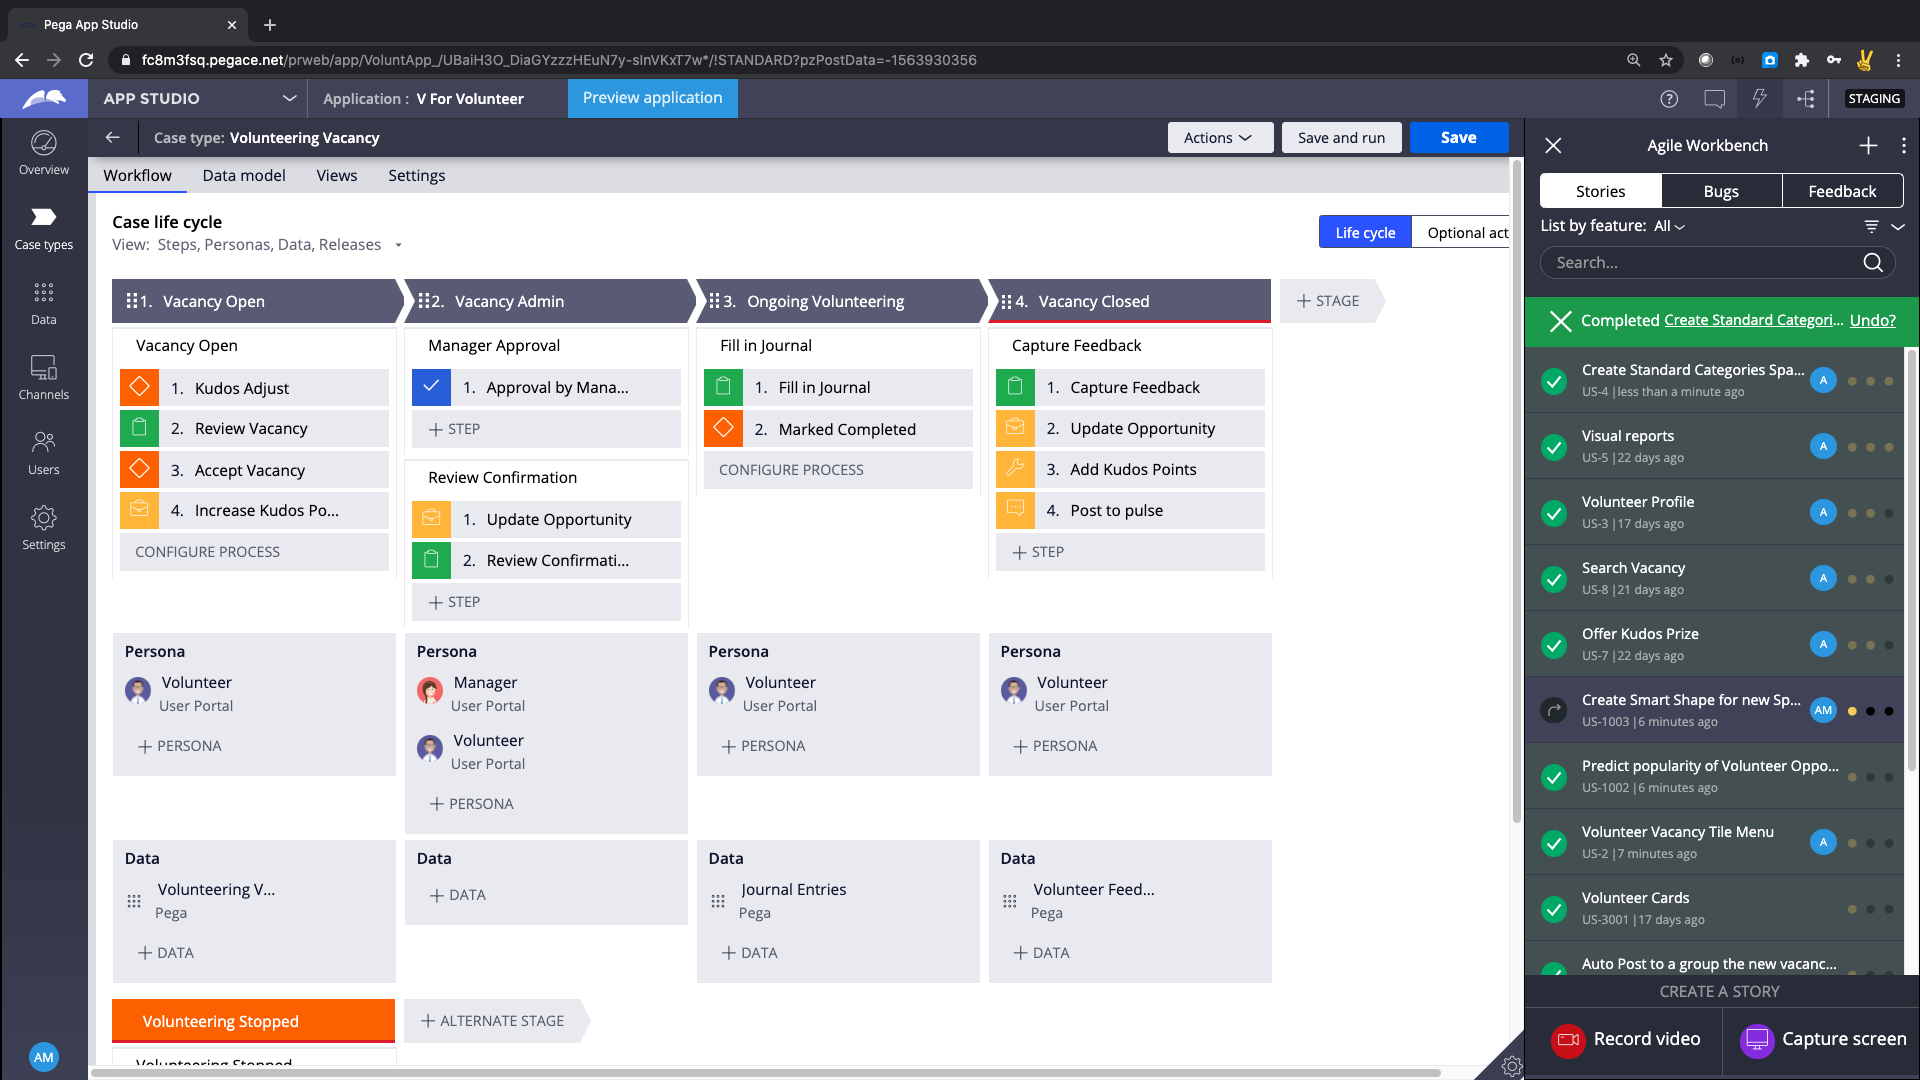 Pega App Studio View of Microjourney and Personas in V For Volunteer